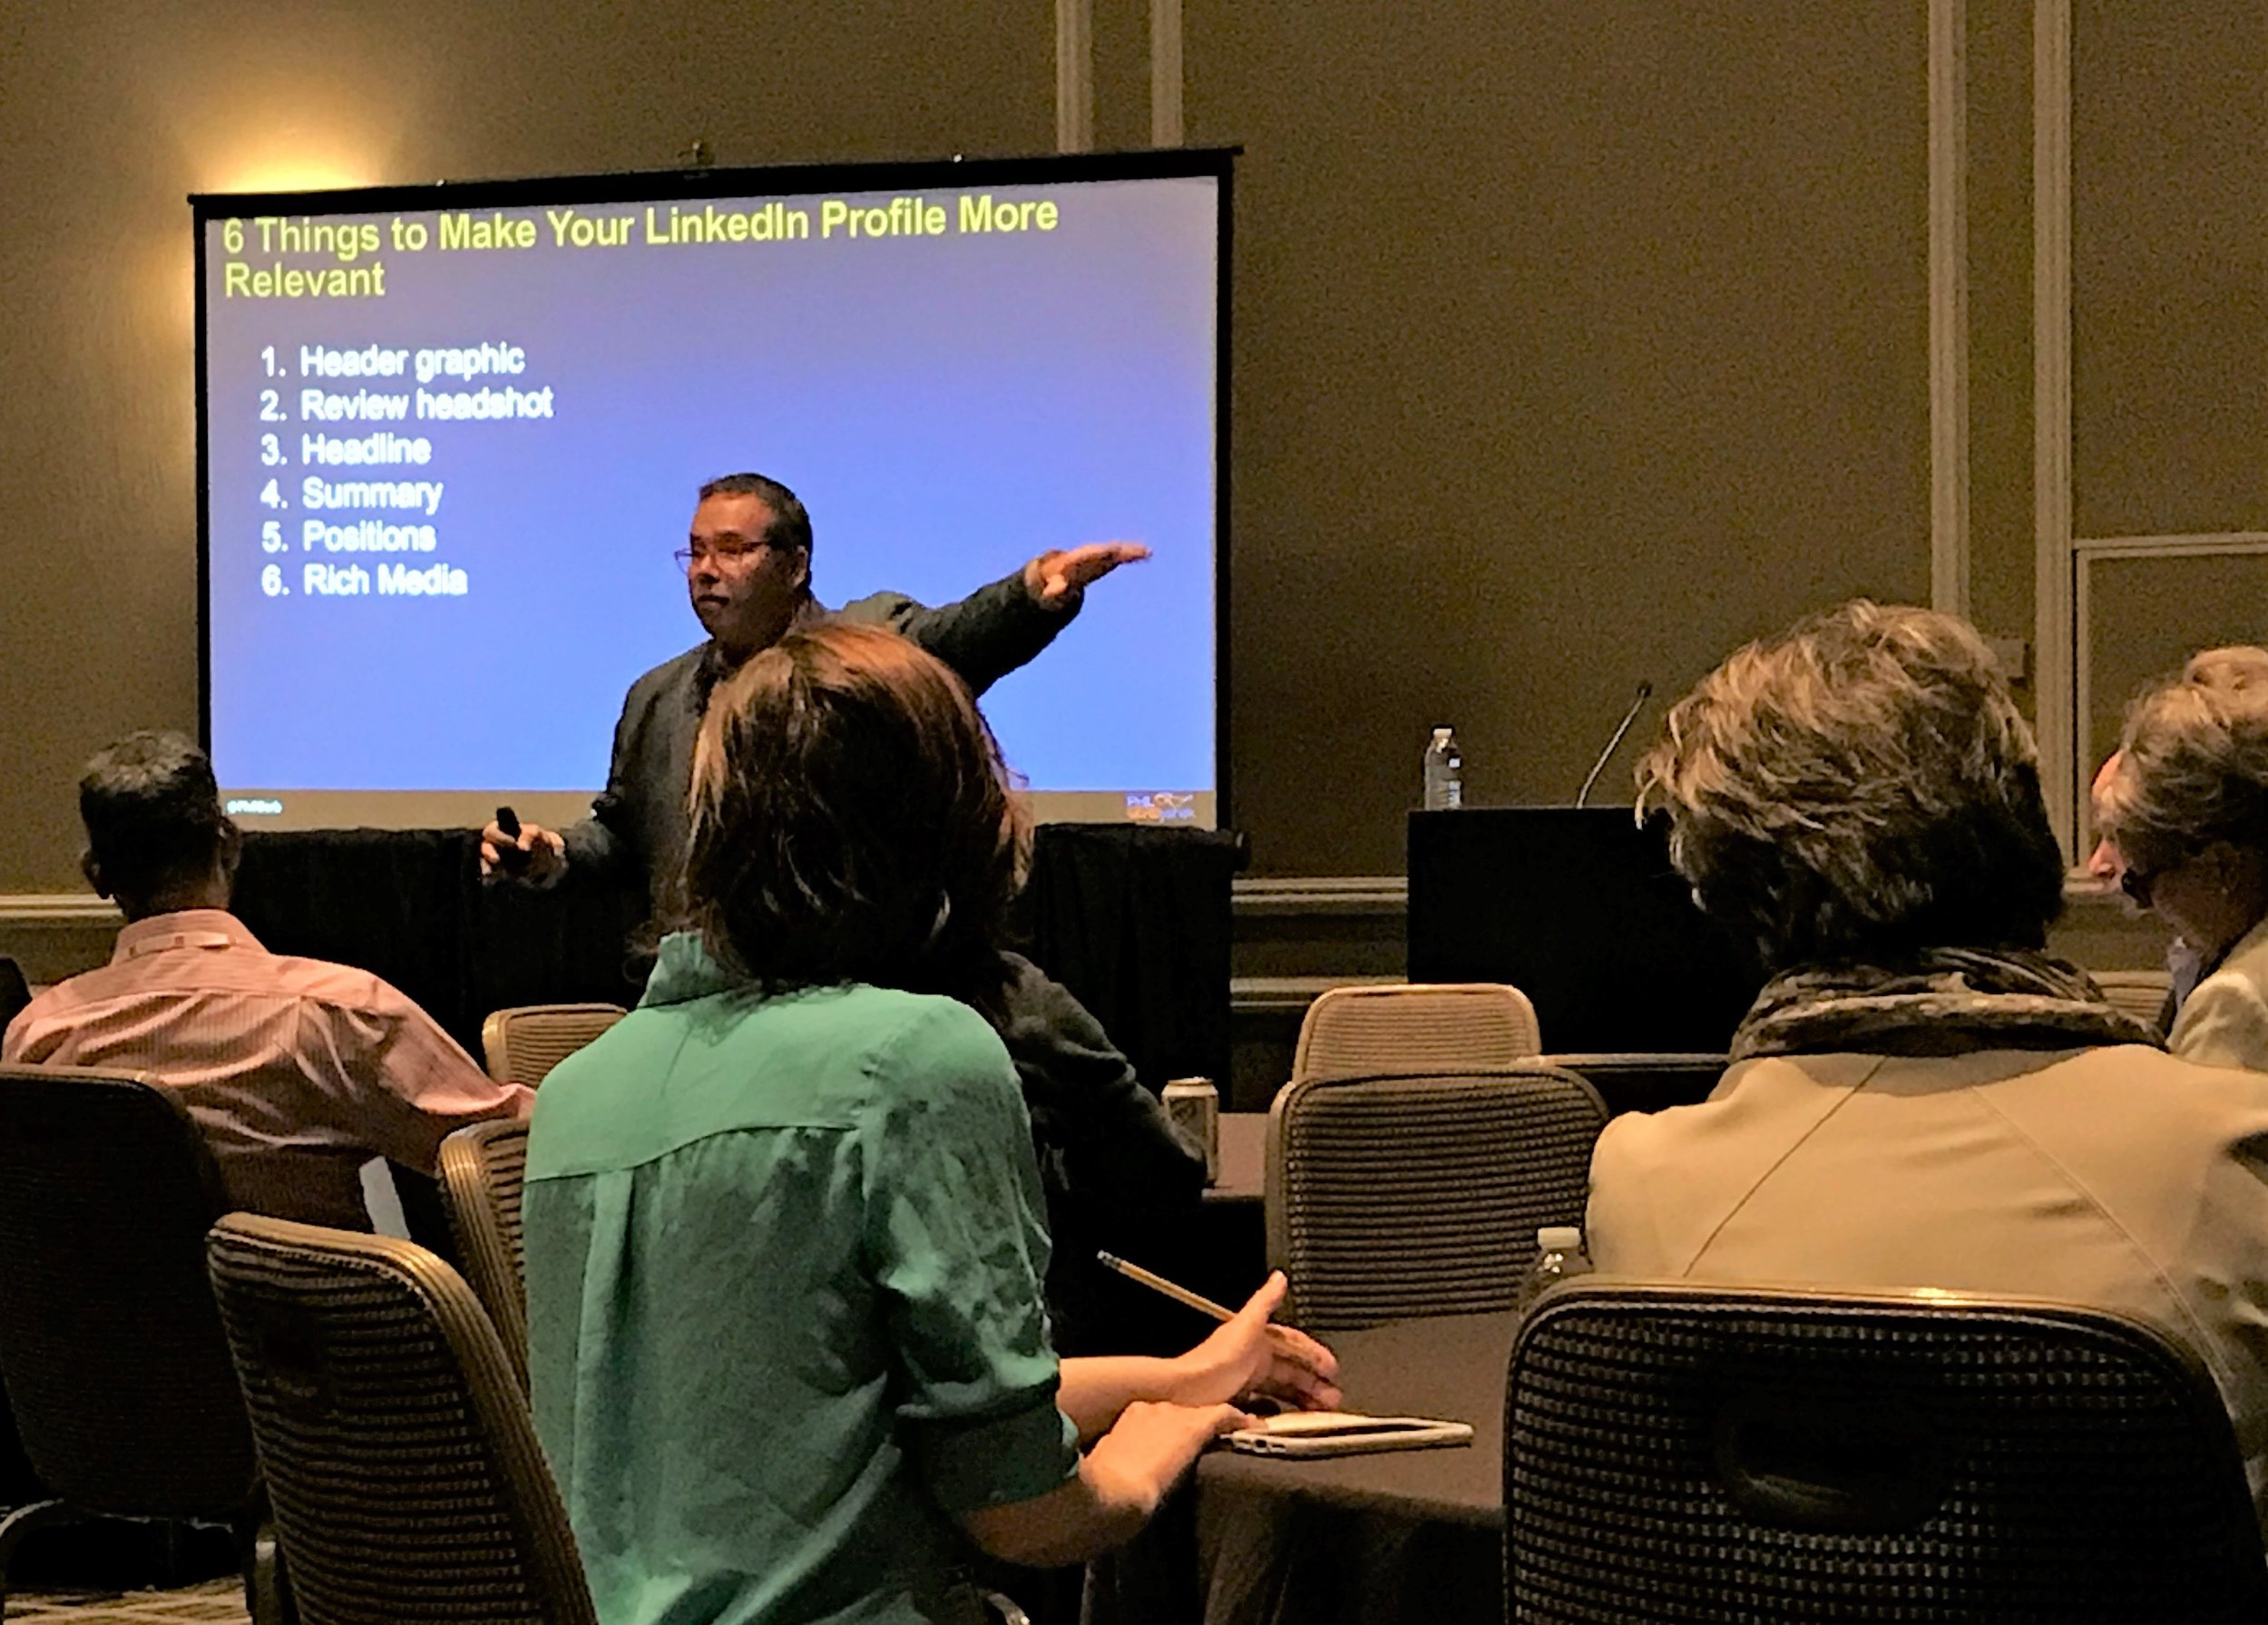 "Speaker Phil Gerbyshak shared suggestions for enhancing LinkedIn profiles and other social media usages during his presentation on ""Sharing Your Personal Brand Through Social Media"" at SIM Connect Live on May 16, 2019."